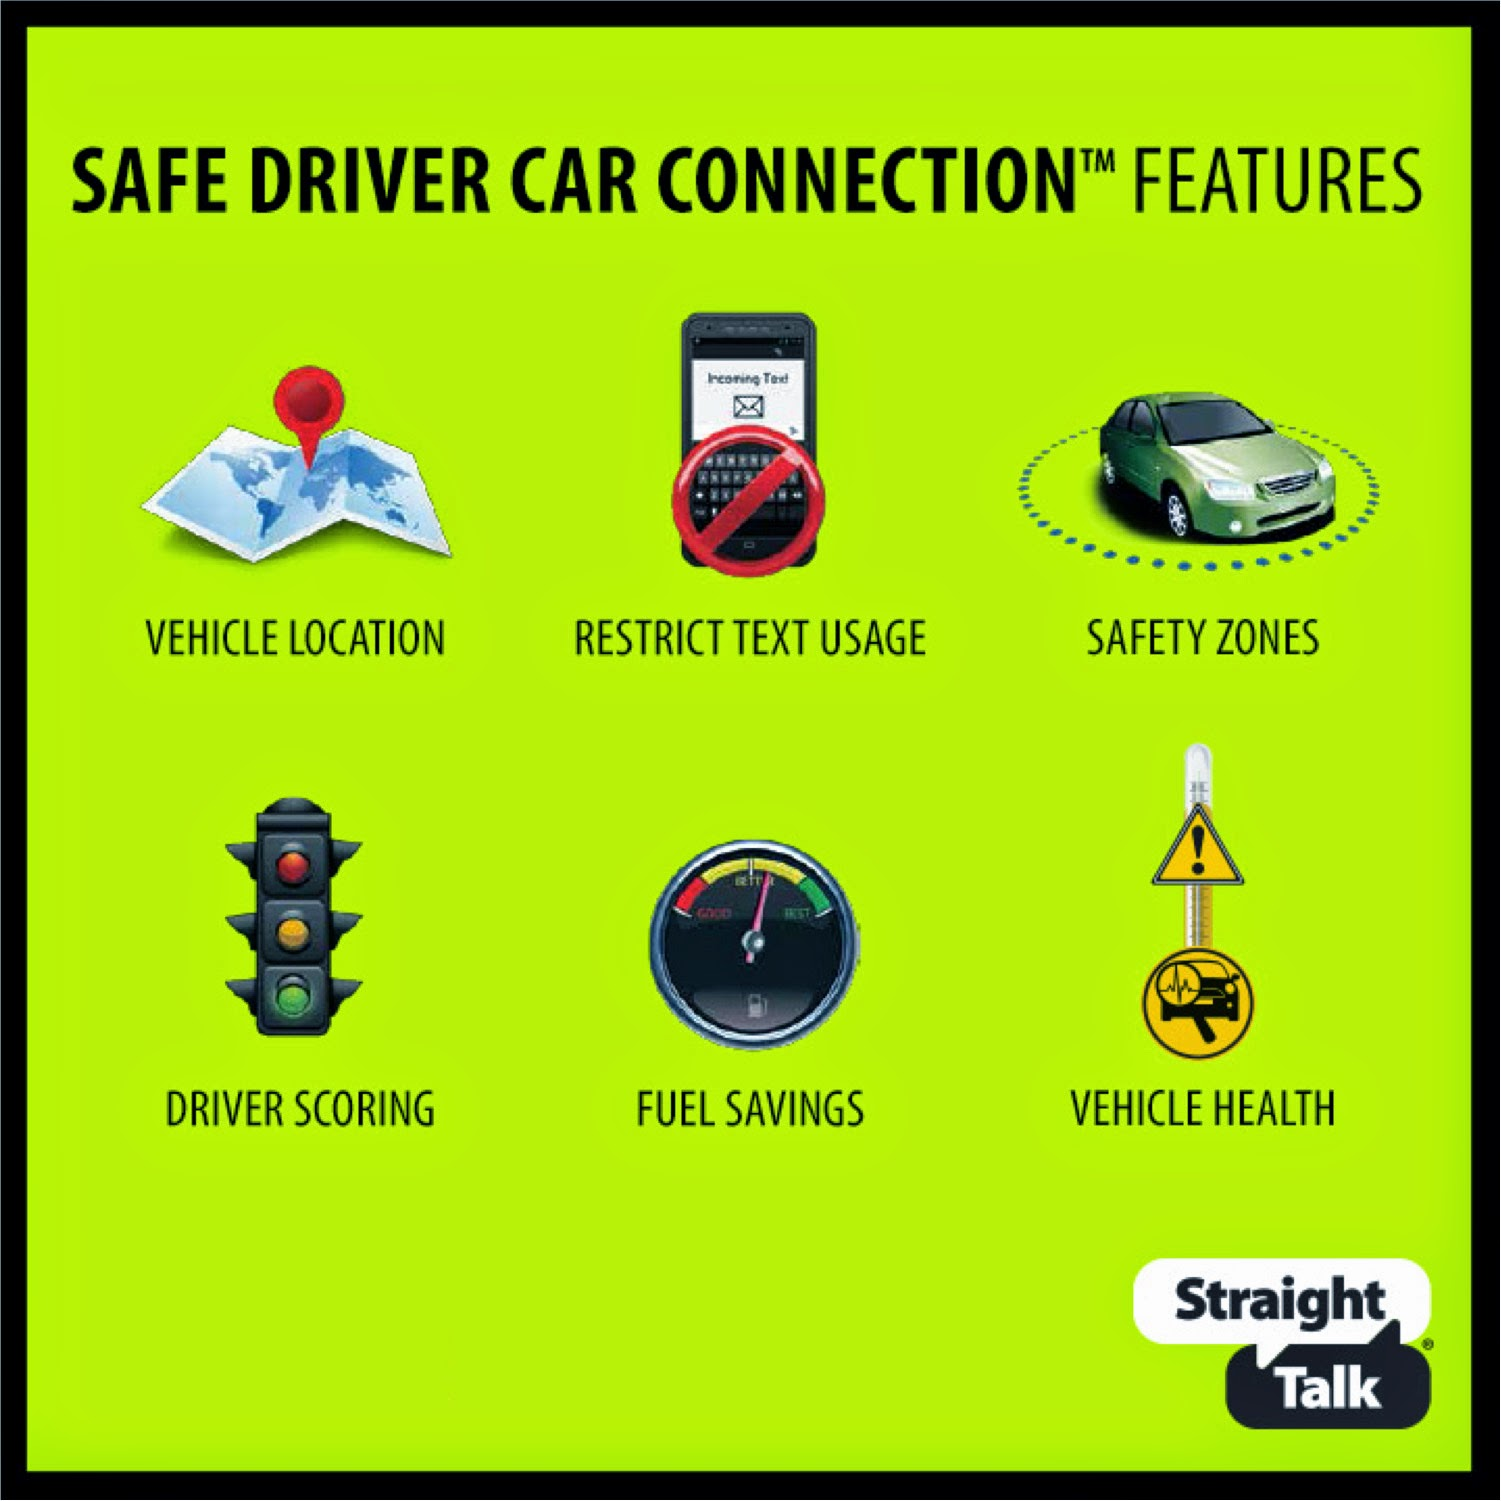 Teach Your Teen Safe Driving Habits with Safe Driver Car Connection preview image